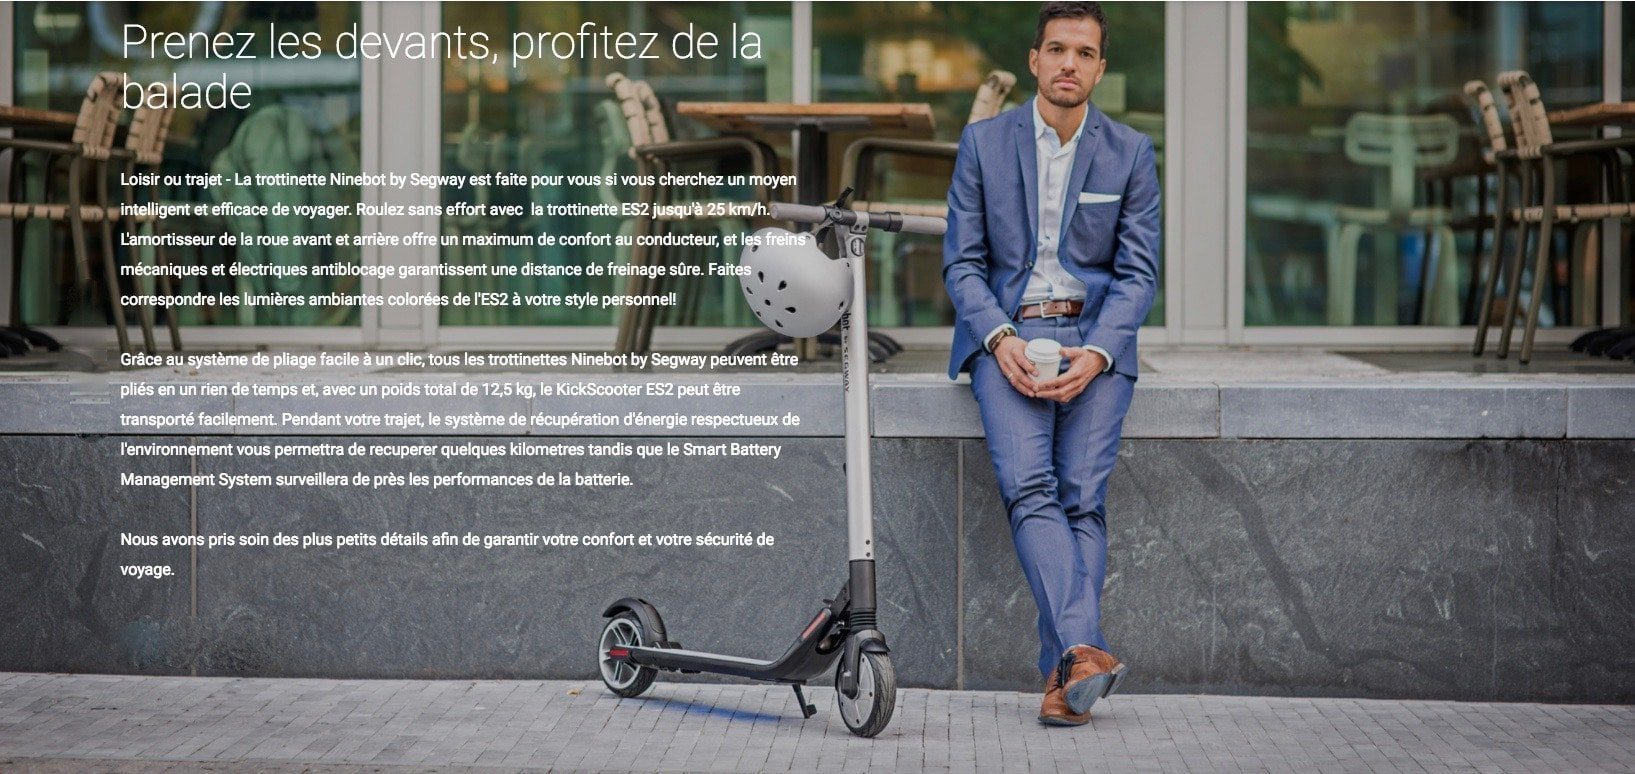 TROTTINETTE NINEBOT BY SEGWAY ES4 - IP54 1